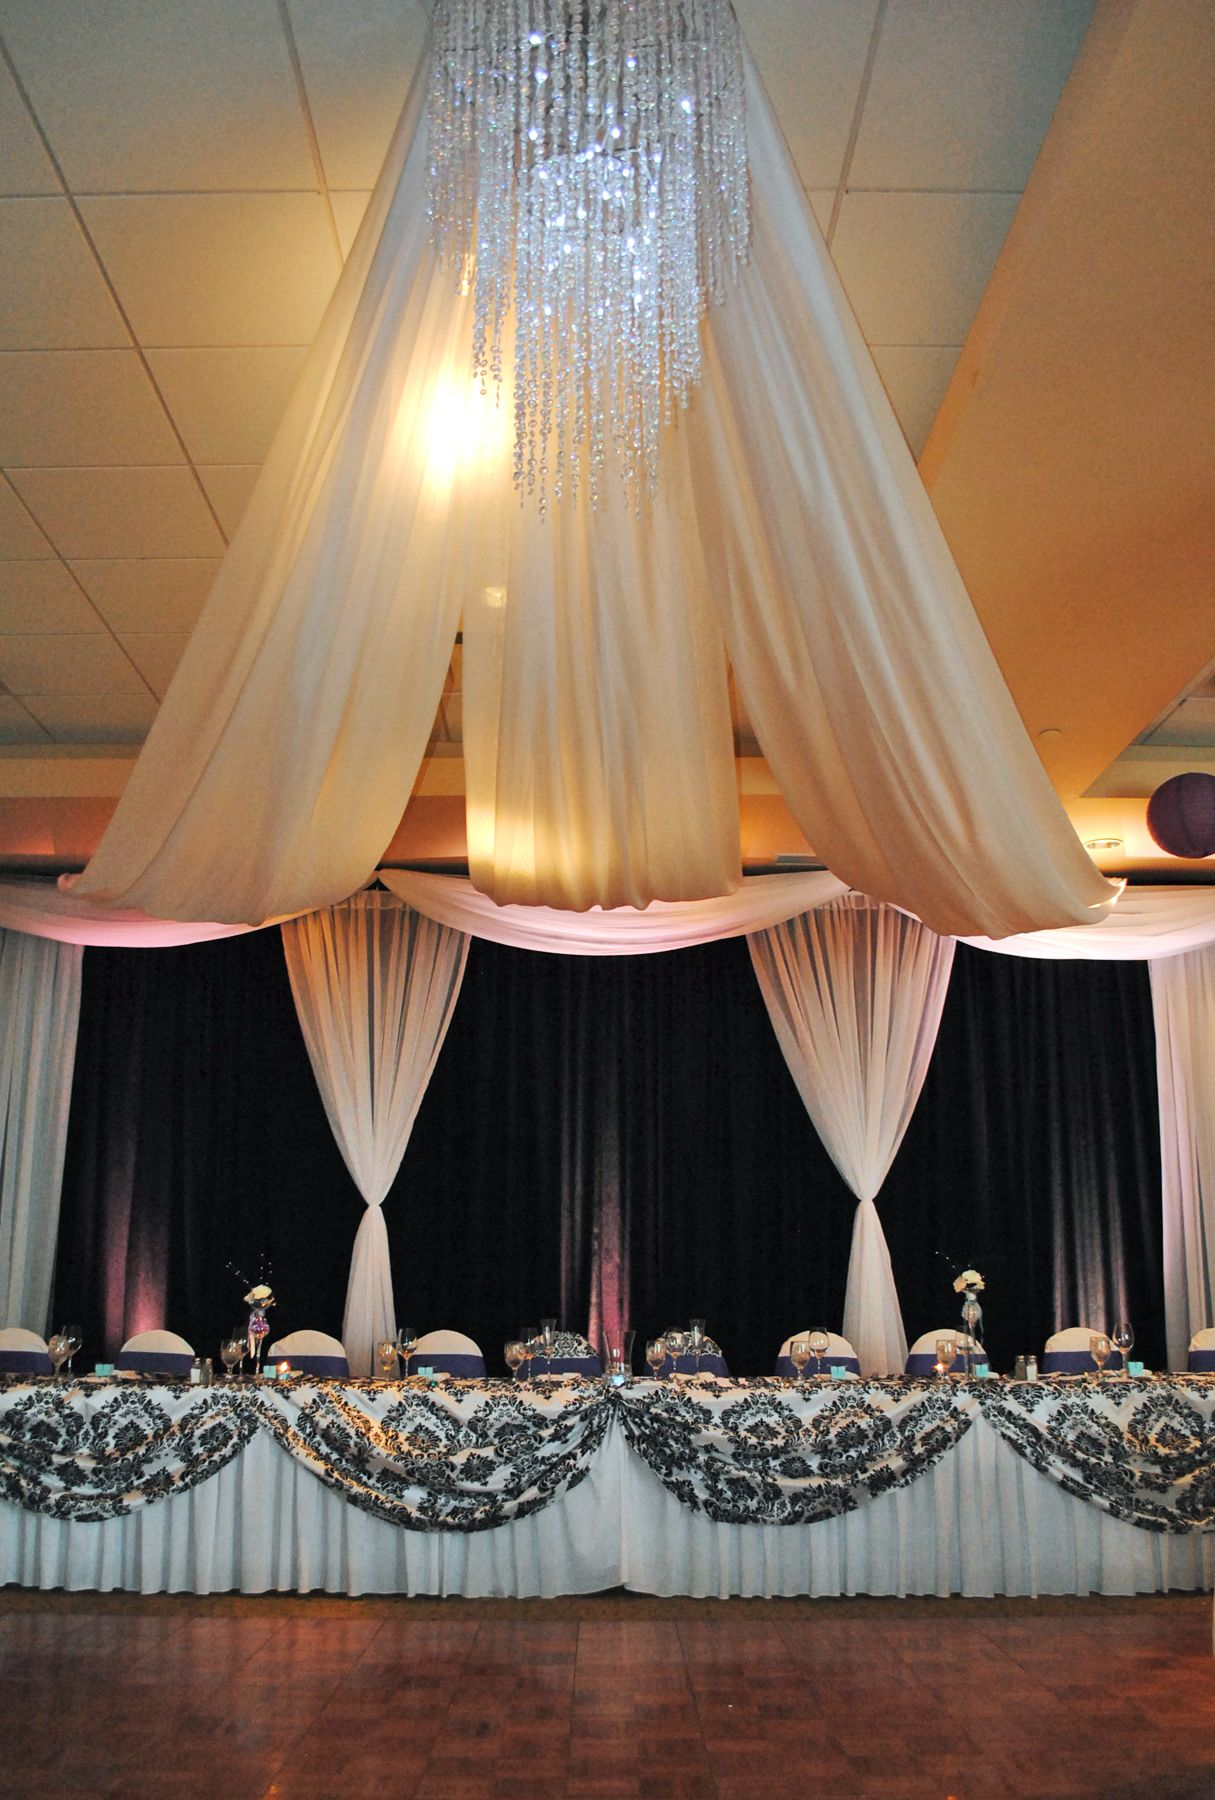 lighting spot drapes portfolio for hang tent pin drape exclusive ceiling pinspotting draping white blue how design to events